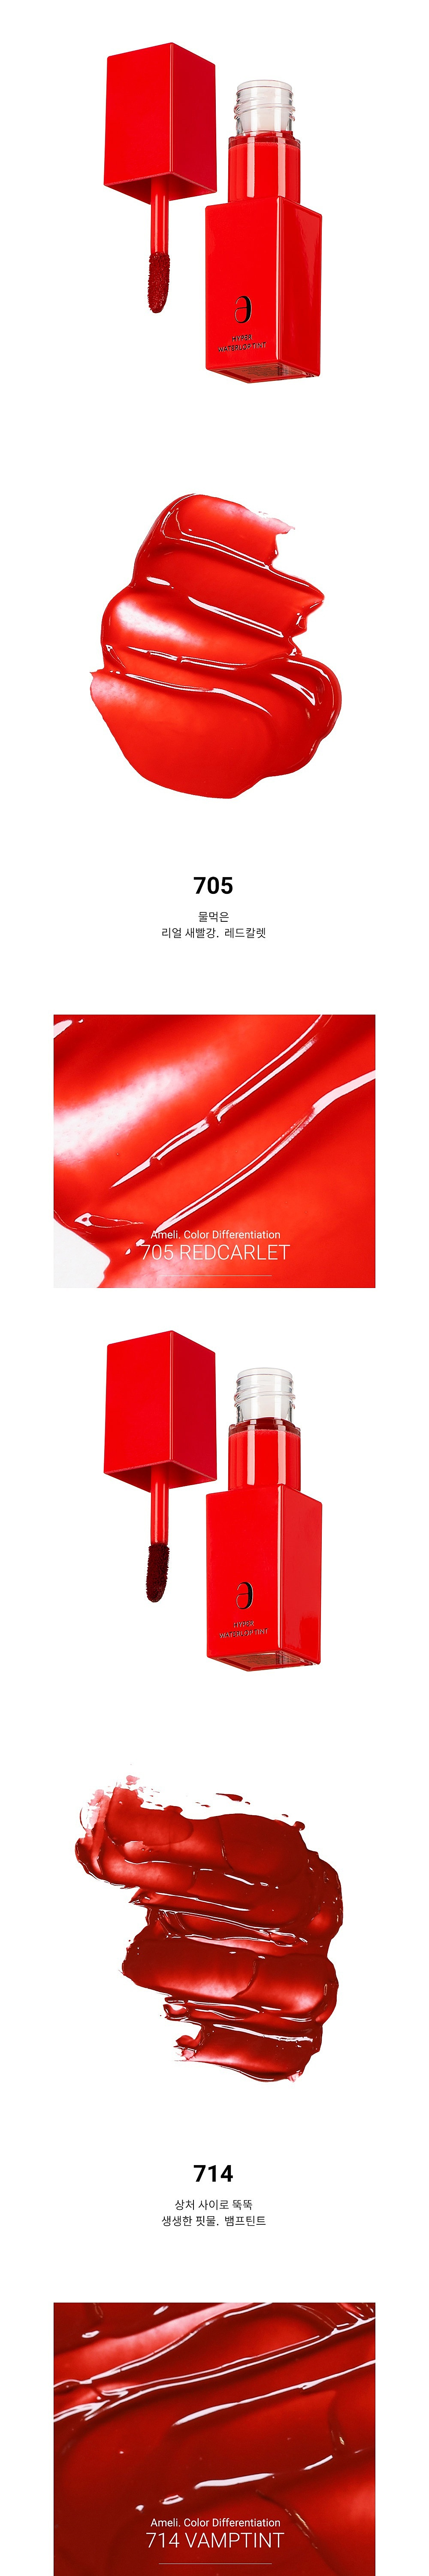 accessories red color image-S1L1